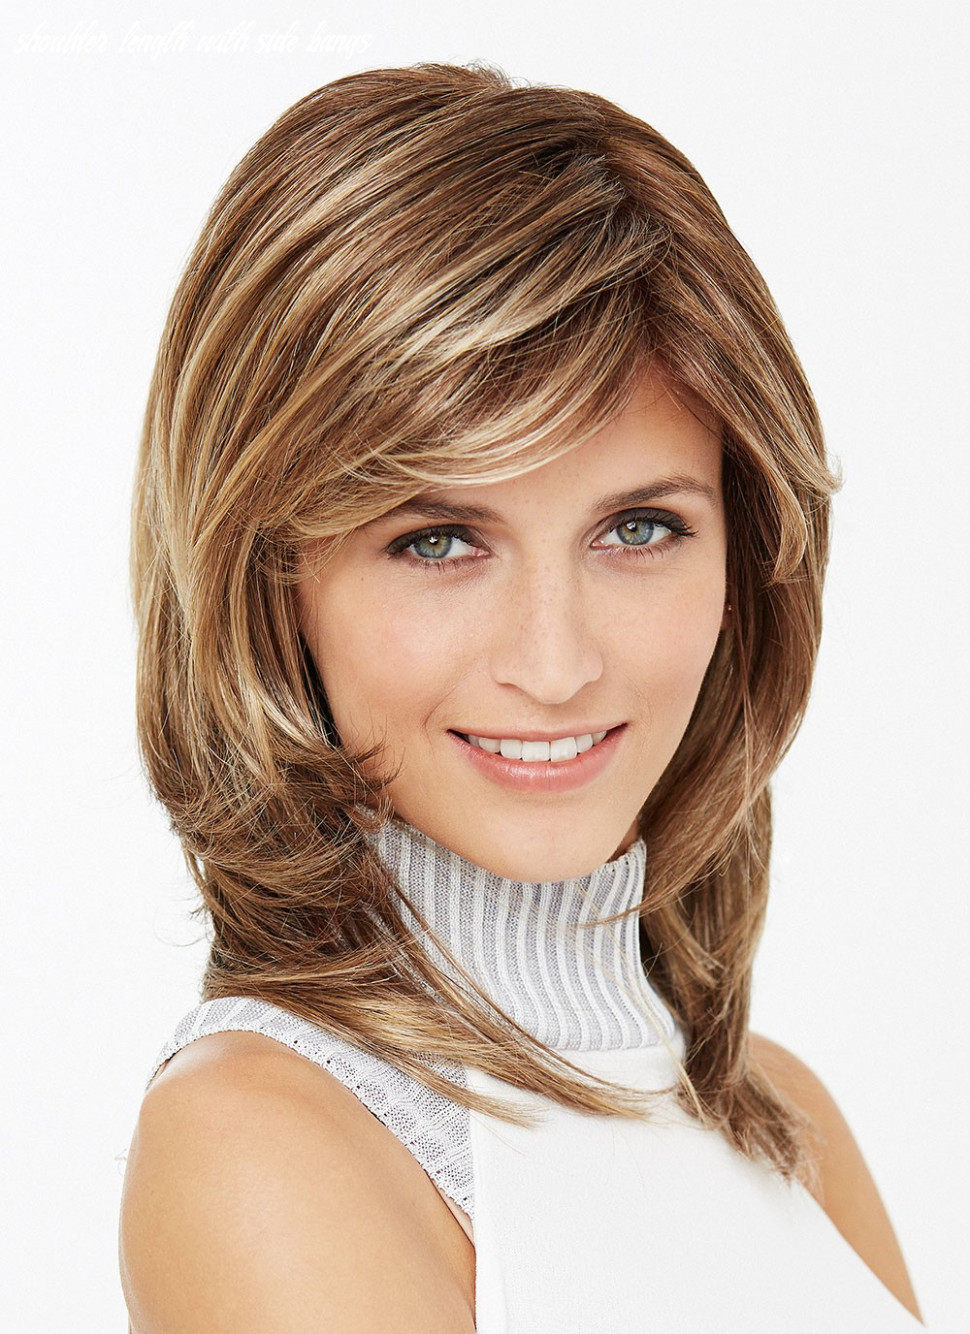 Shoulder length straight layered synthetic hair wig with side bangs shoulder length with side bangs